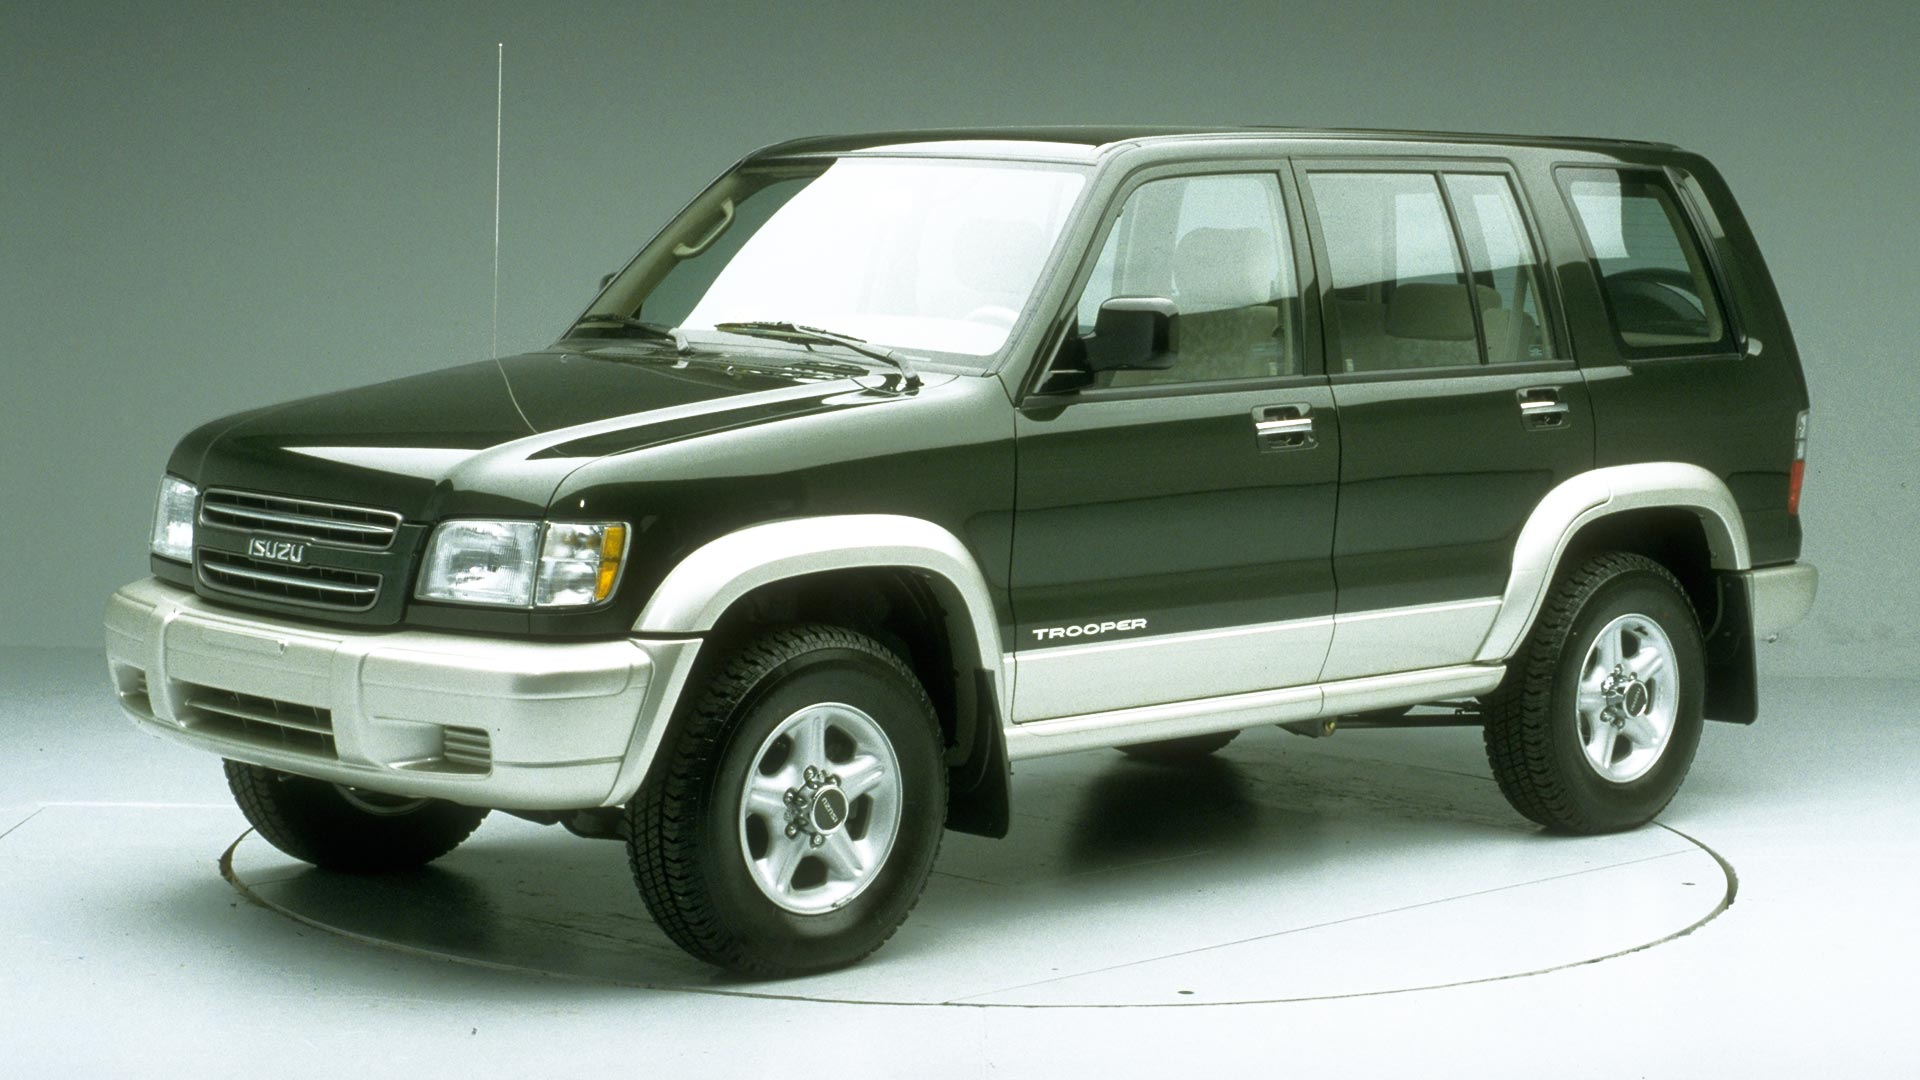 2000 Isuzu Trooper 4-door SUV